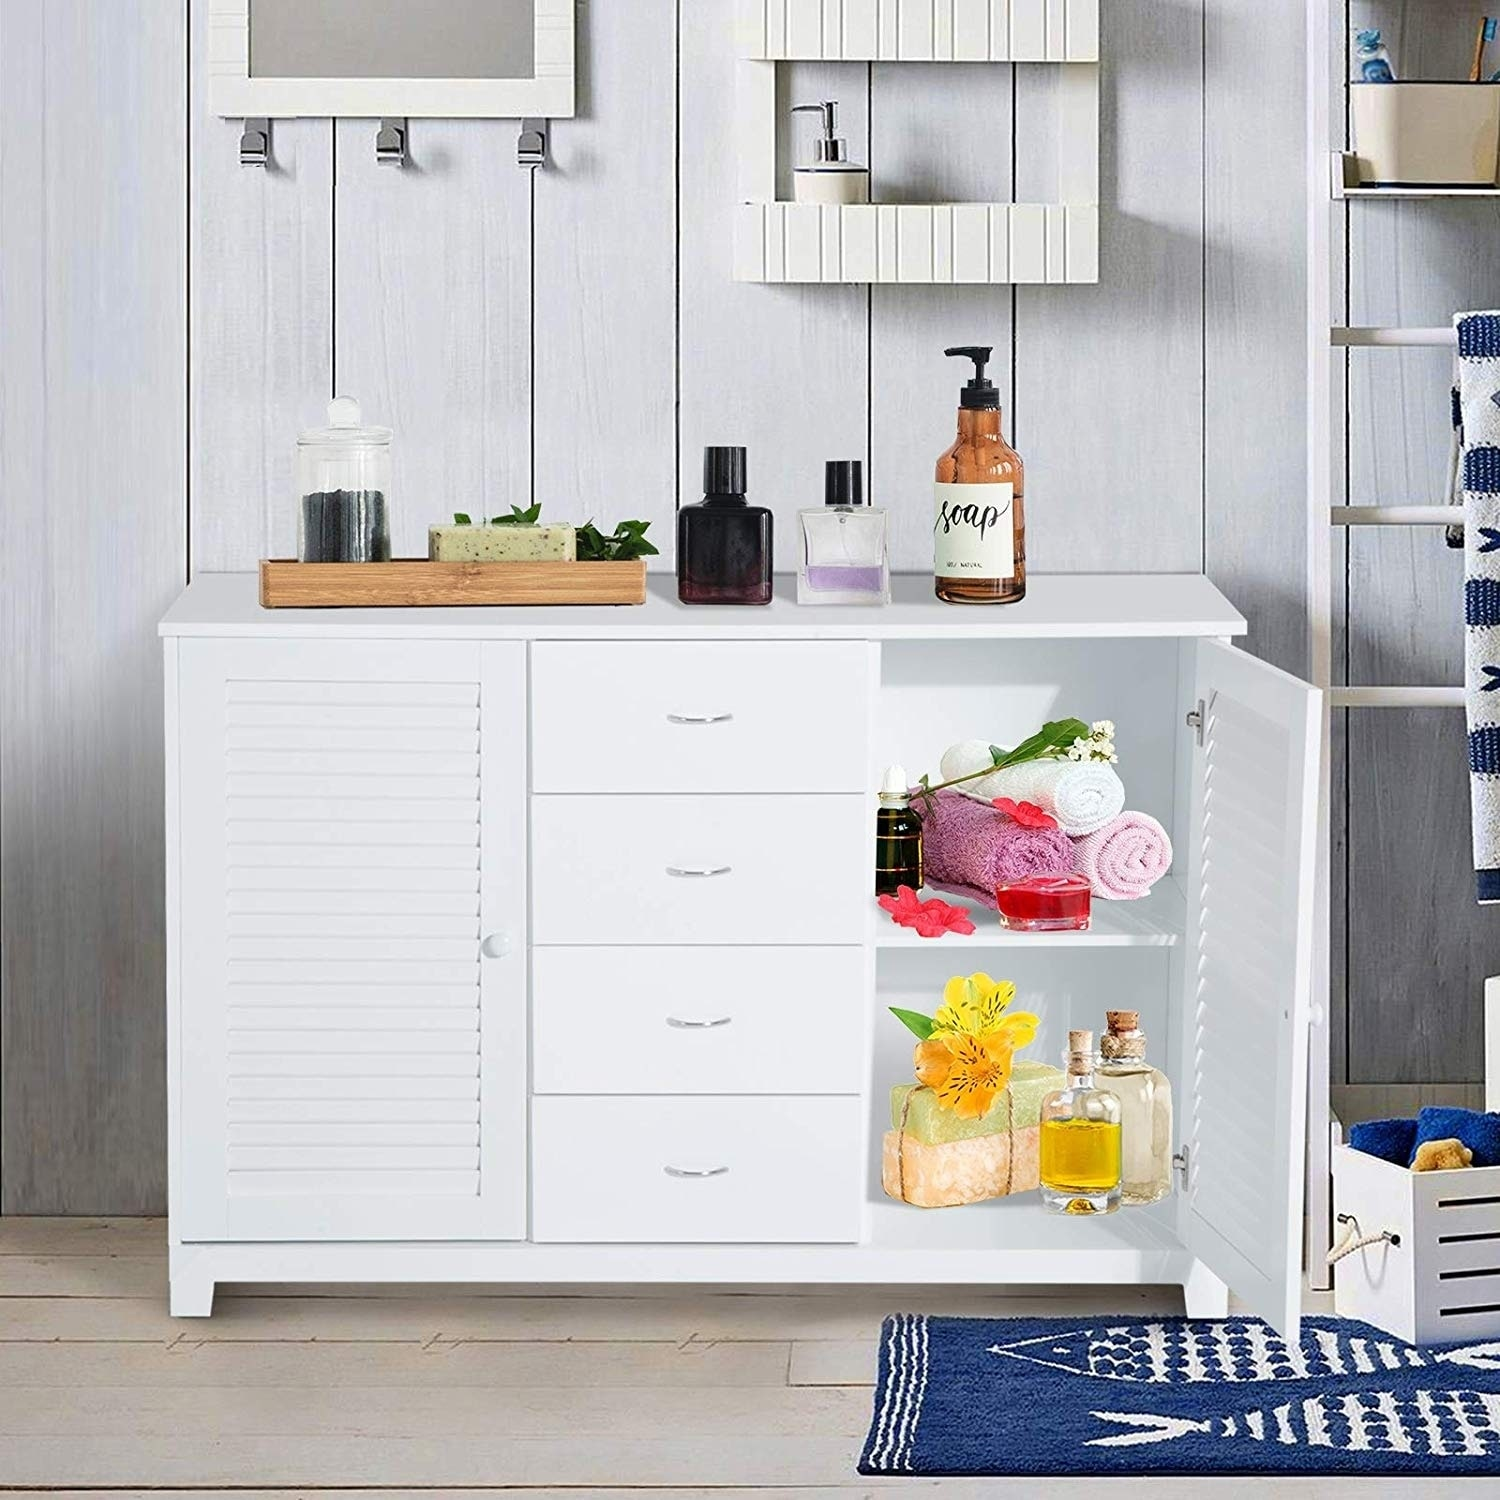 White Bathroom Cabinet Buffet Sideboard 47 25 W X 15 75 D X 31 5 H Overstock 28302755